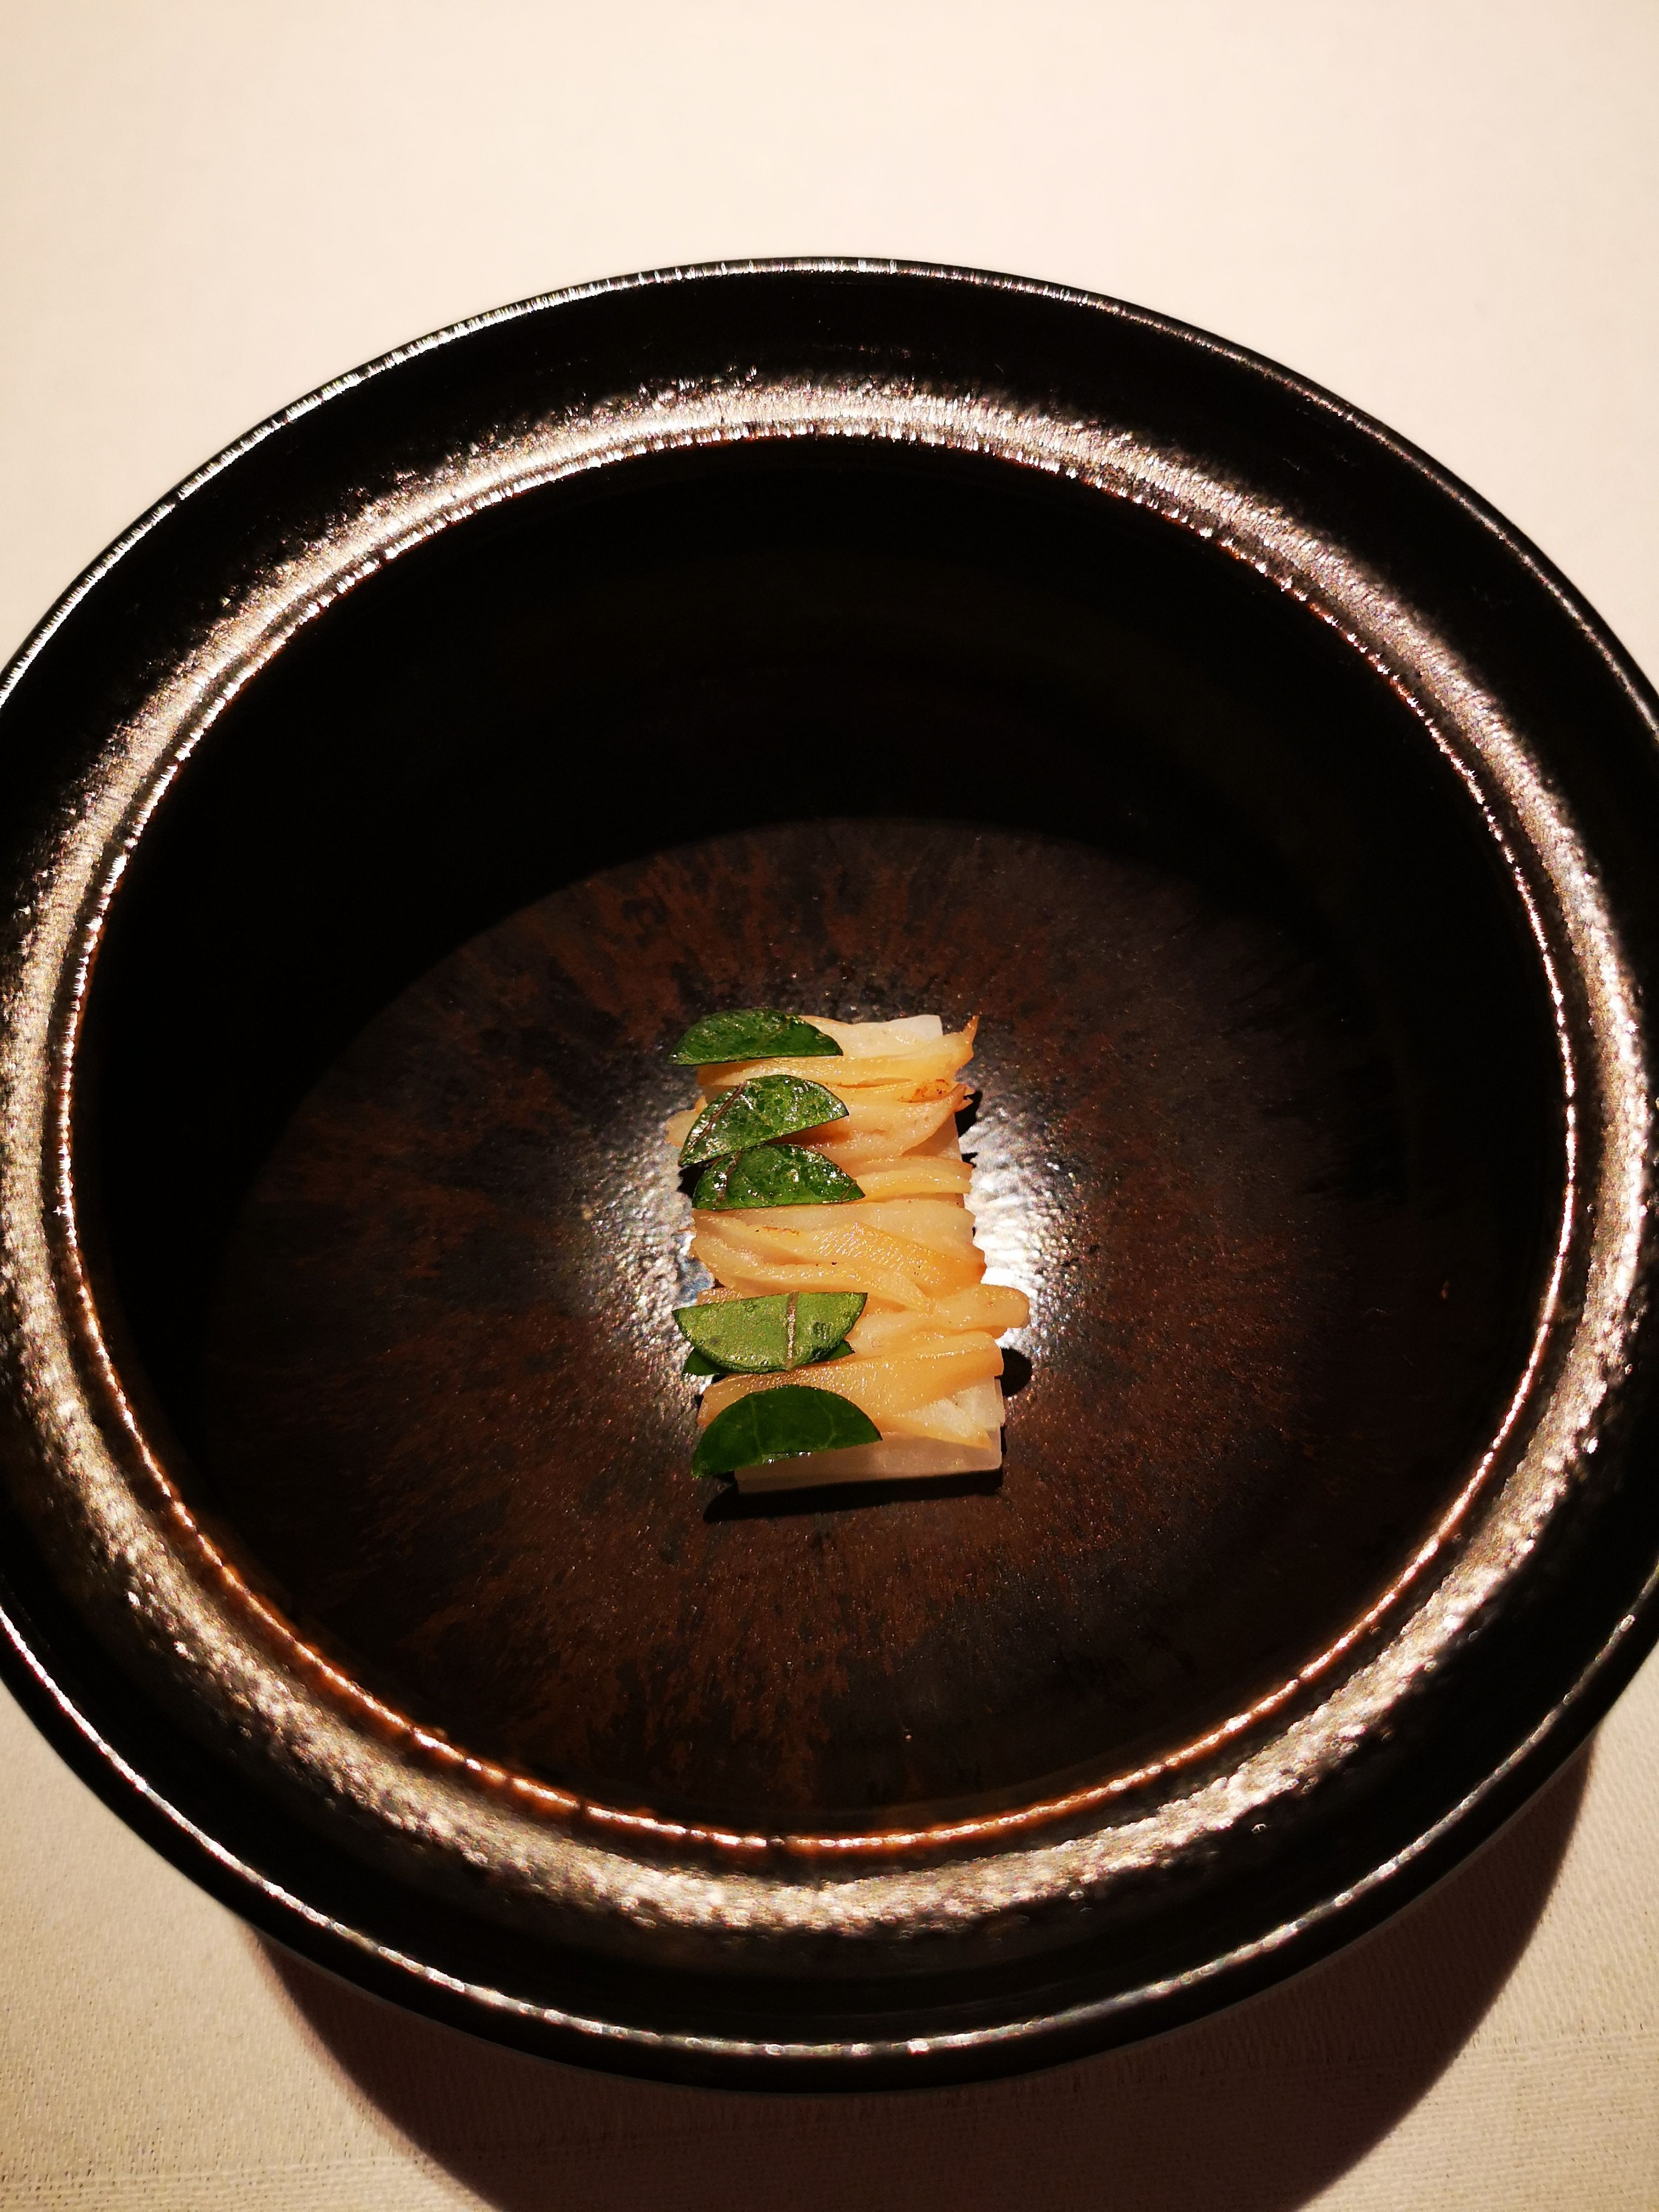 Connemara clam flash cooked over hot birch wood with fermented kohlrabi juice infused with lemon balm, smoked Newgrange rapeseed oil